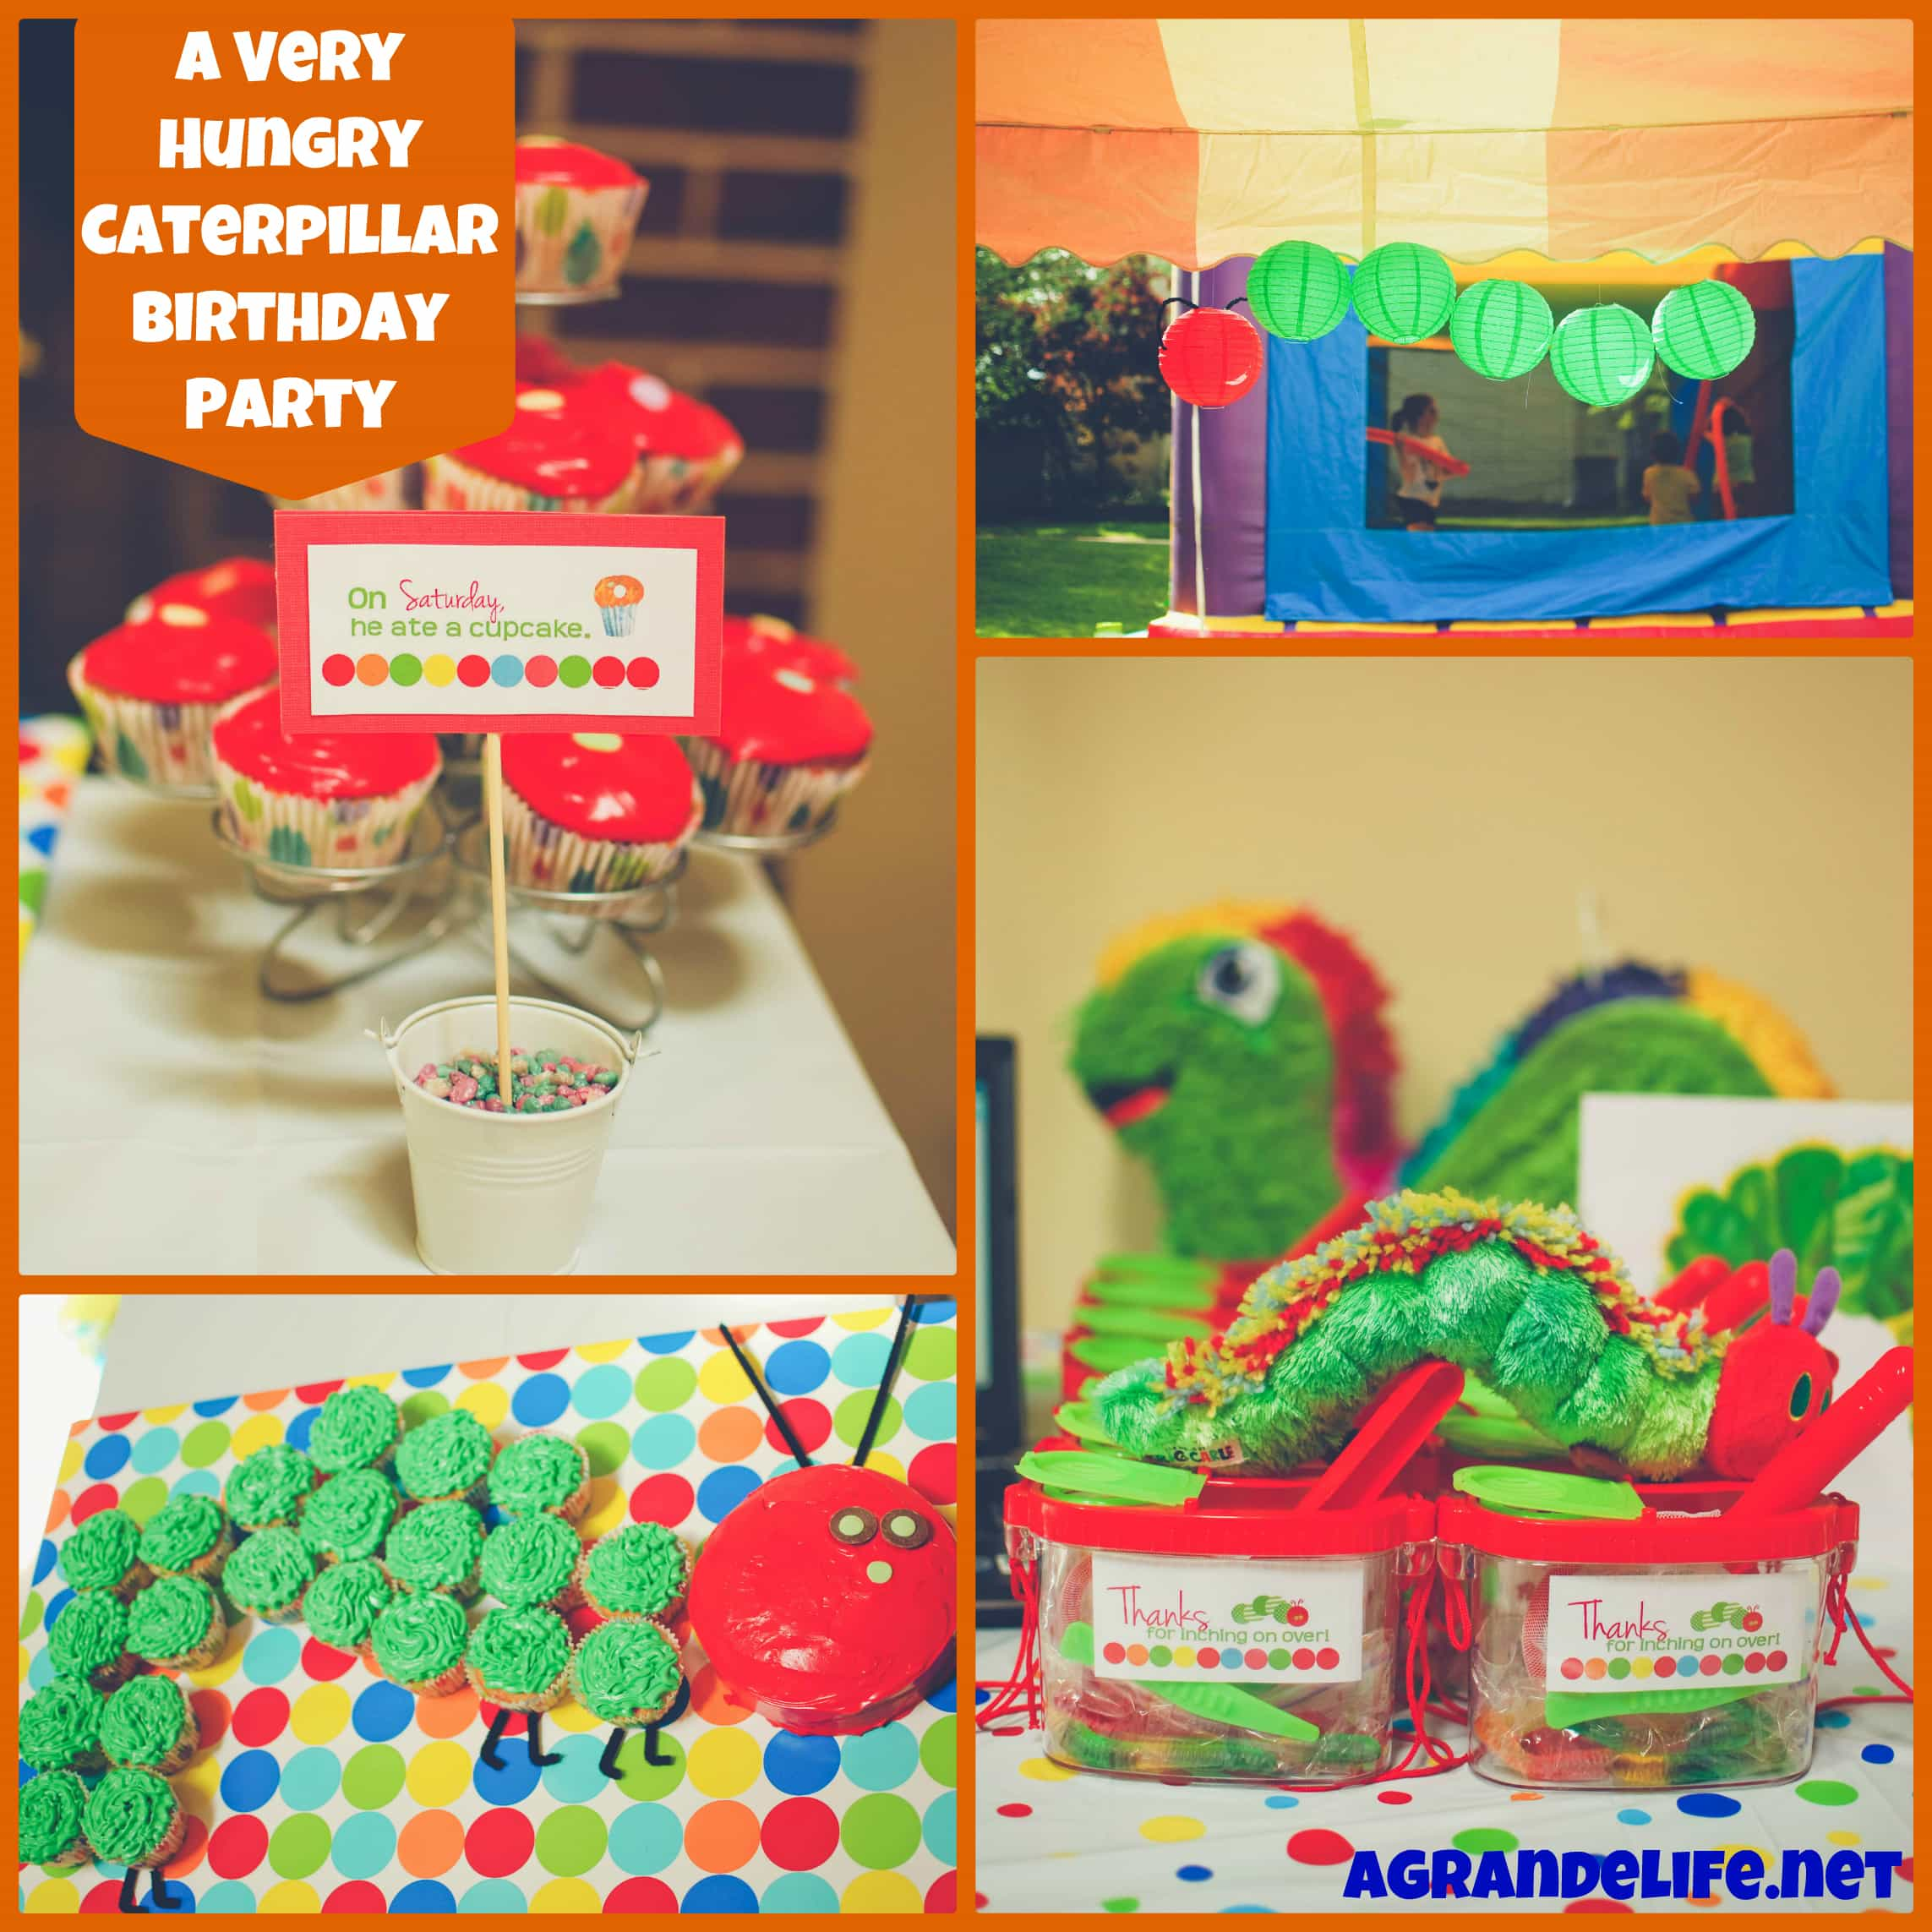 http://agrandelife.net/wp-content/uploads/2012/05/a-very-hungry-caterpillar-birthday-party.jpg